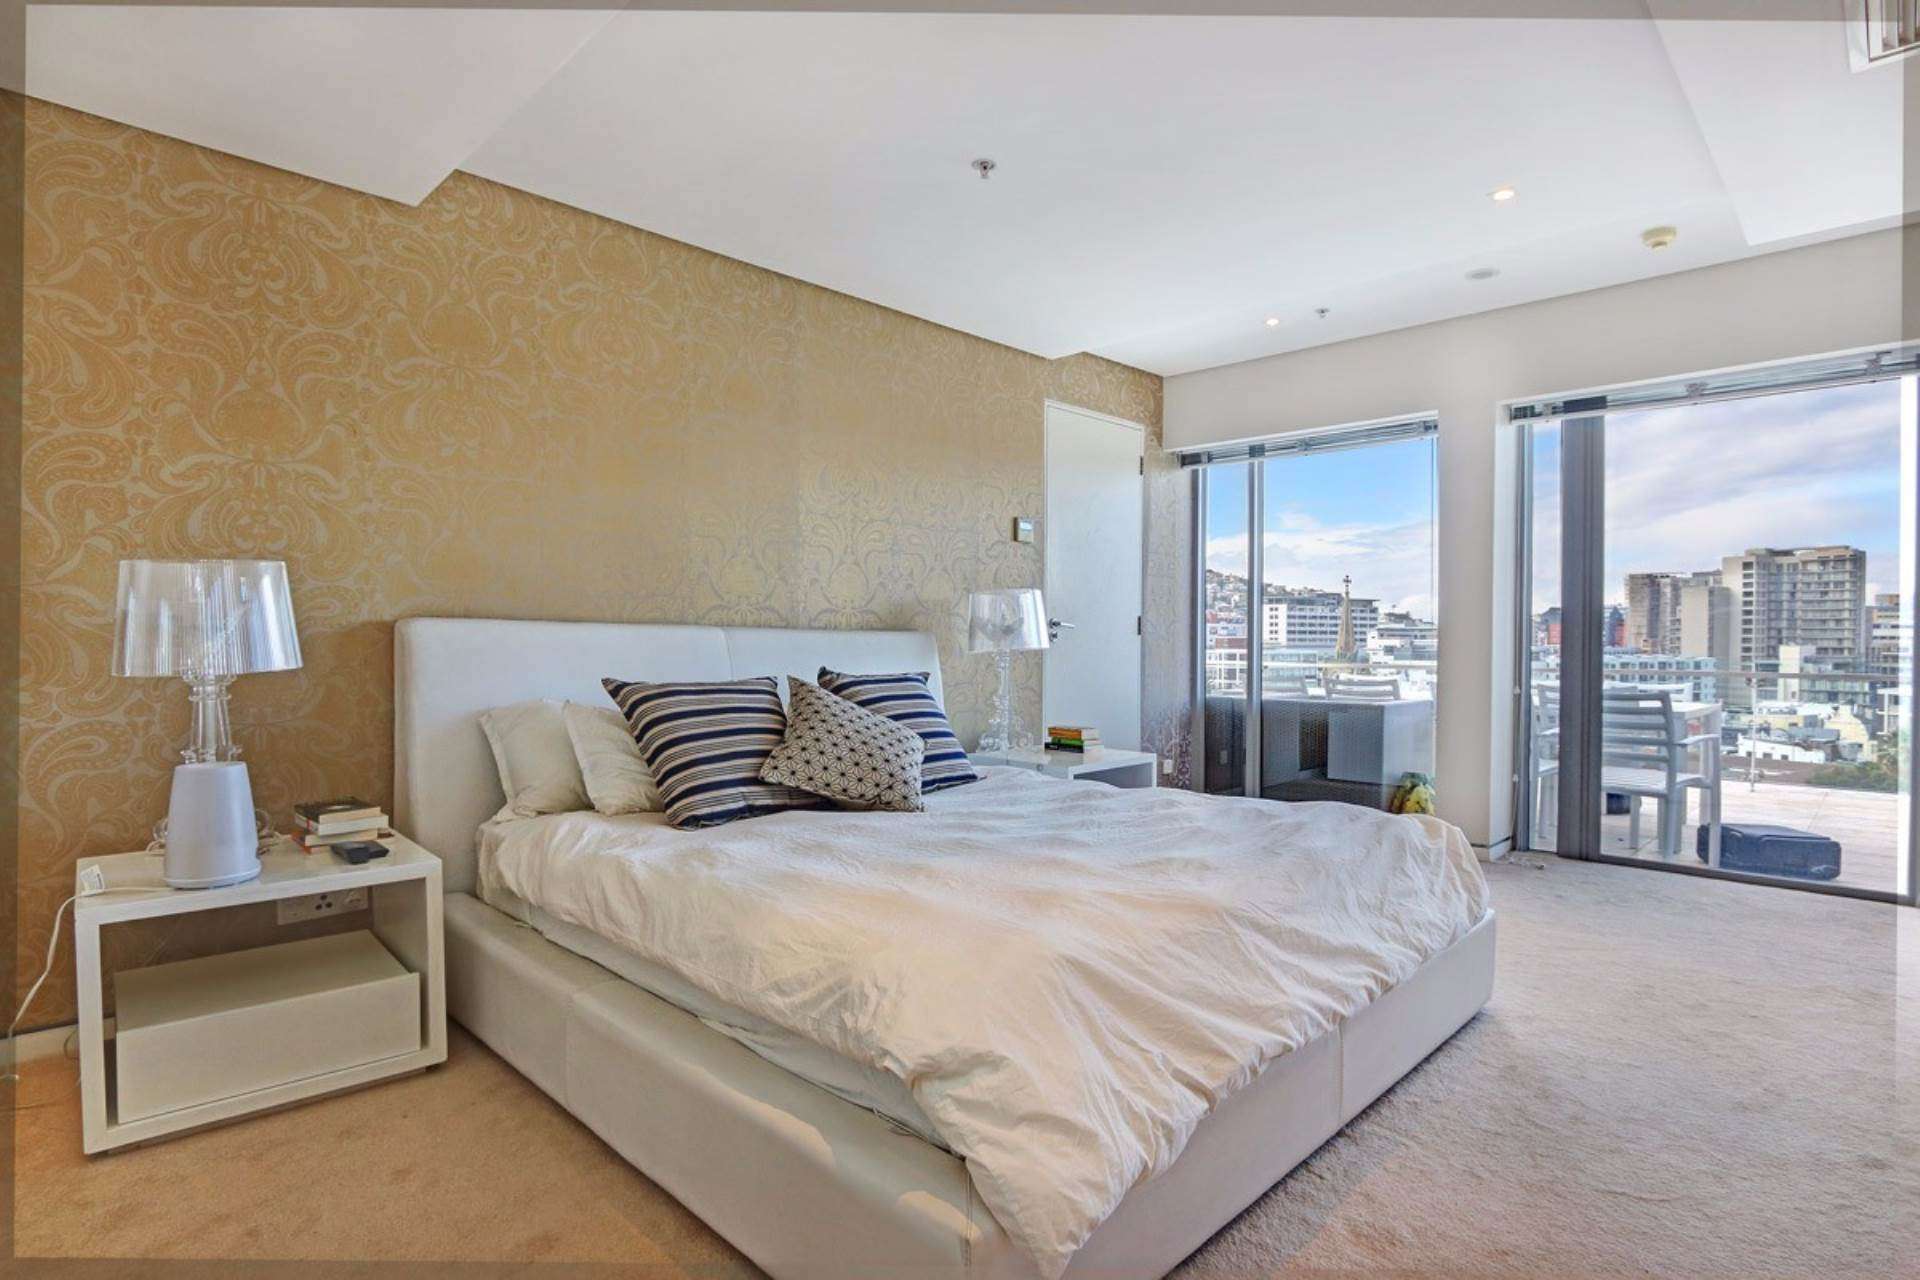 Apartment For Sale In Cape Town 2 Bedroom 13475433 7 5